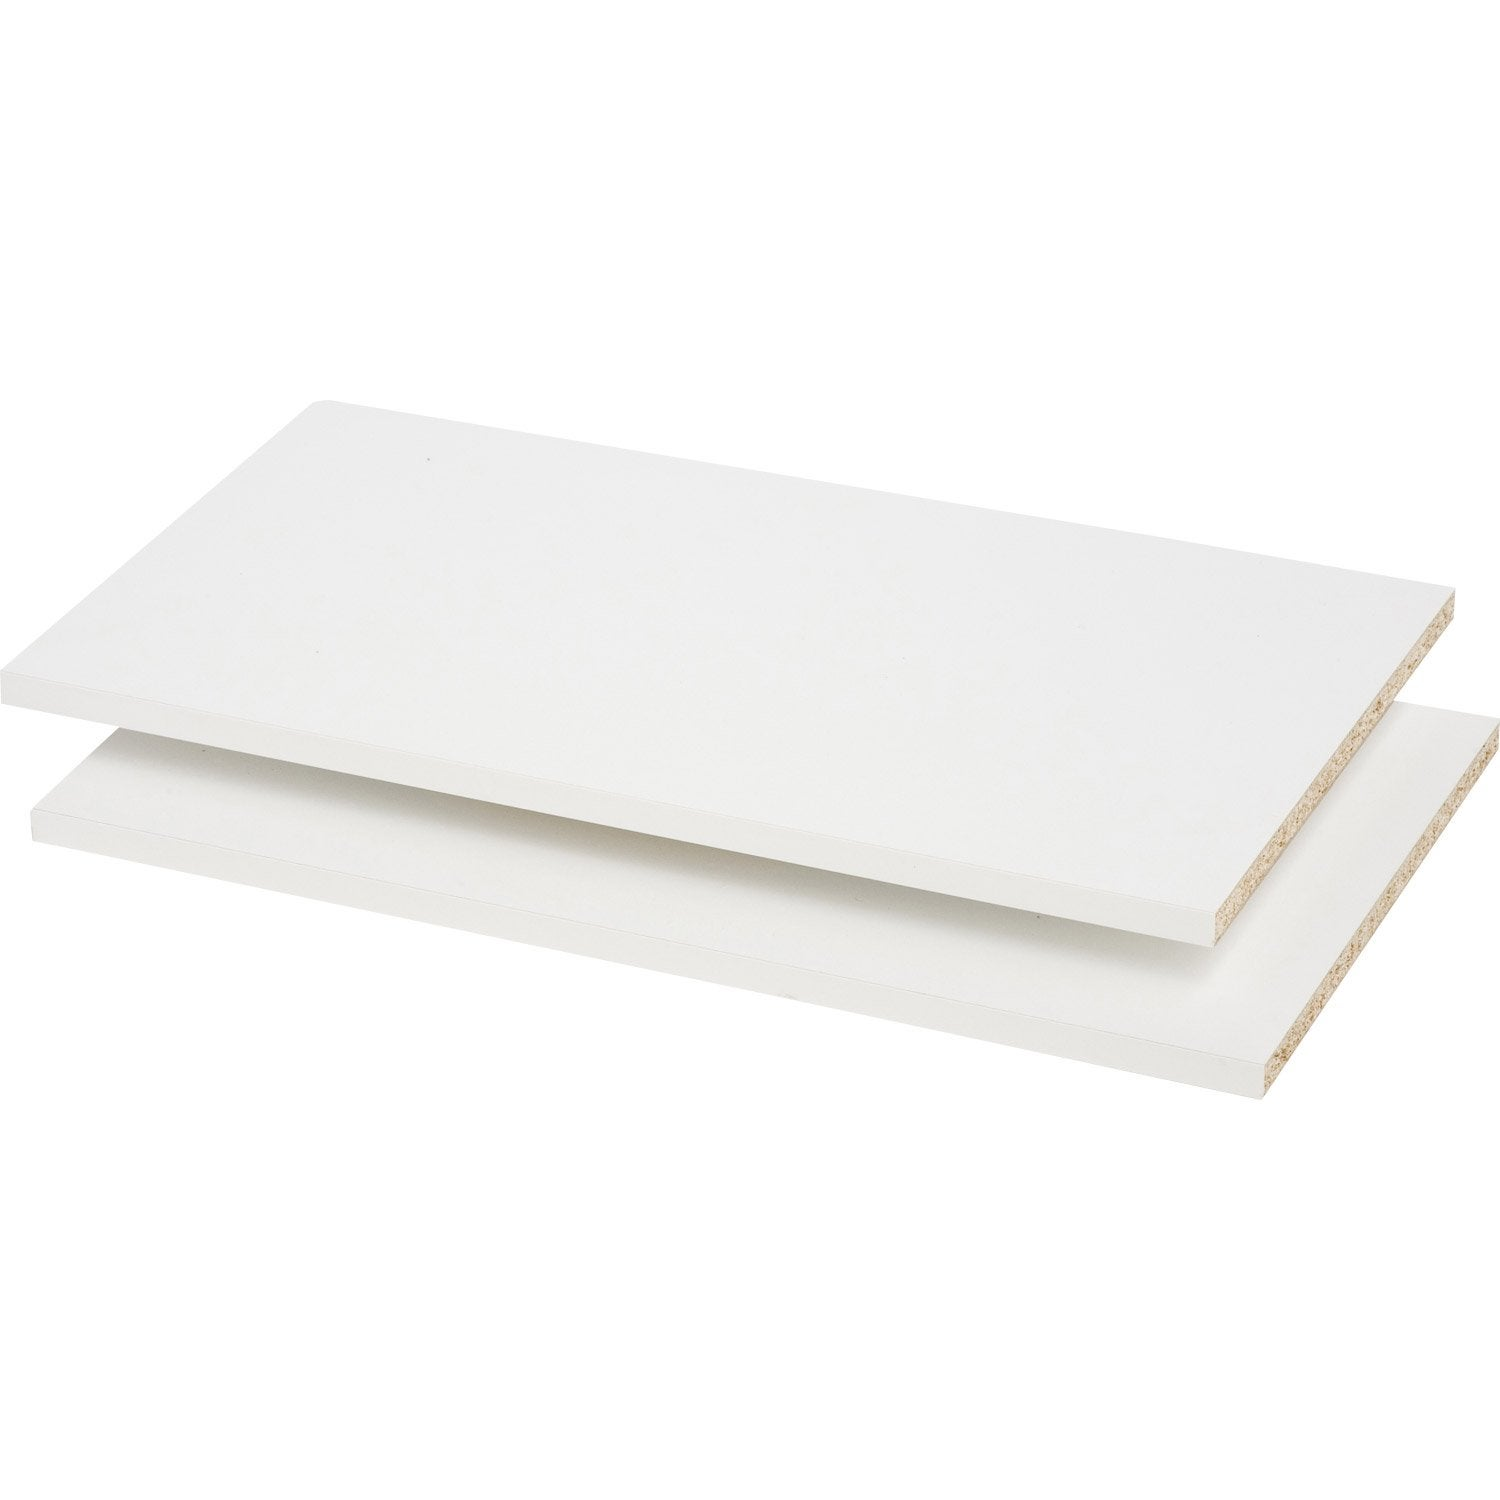 Lot de 2 tablettes spaceo interior blanc l60x p32 cm ep for Tablette spaceo leroy merlin